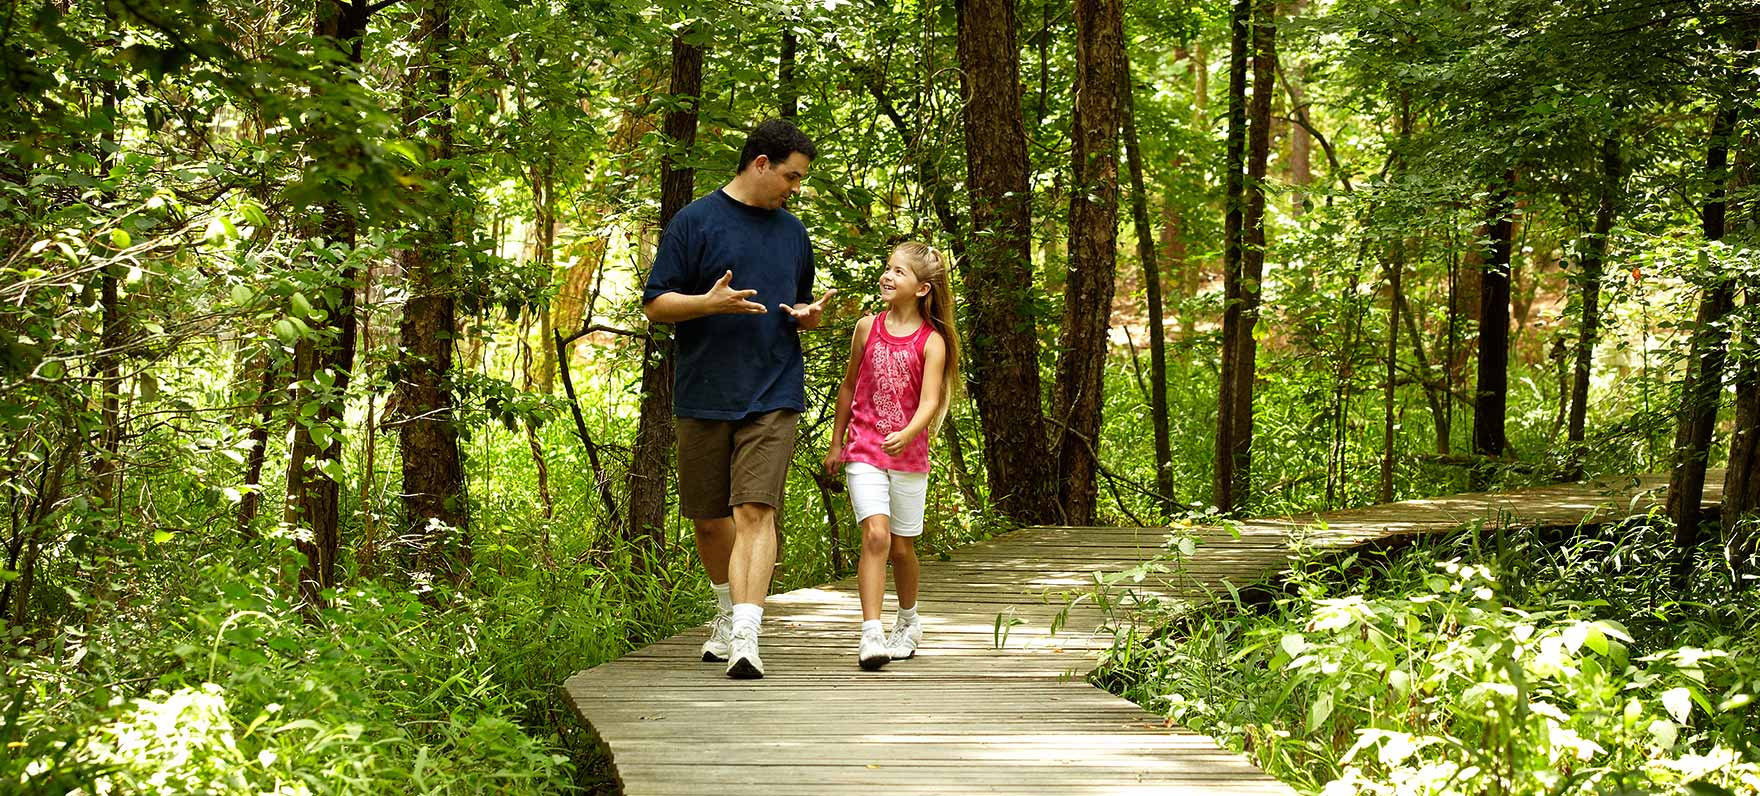 Under the tall trees of the Pineywoods, hike with the soft crunch of pine needles underfoot and cross paths with abundant wildlife who call the park home.